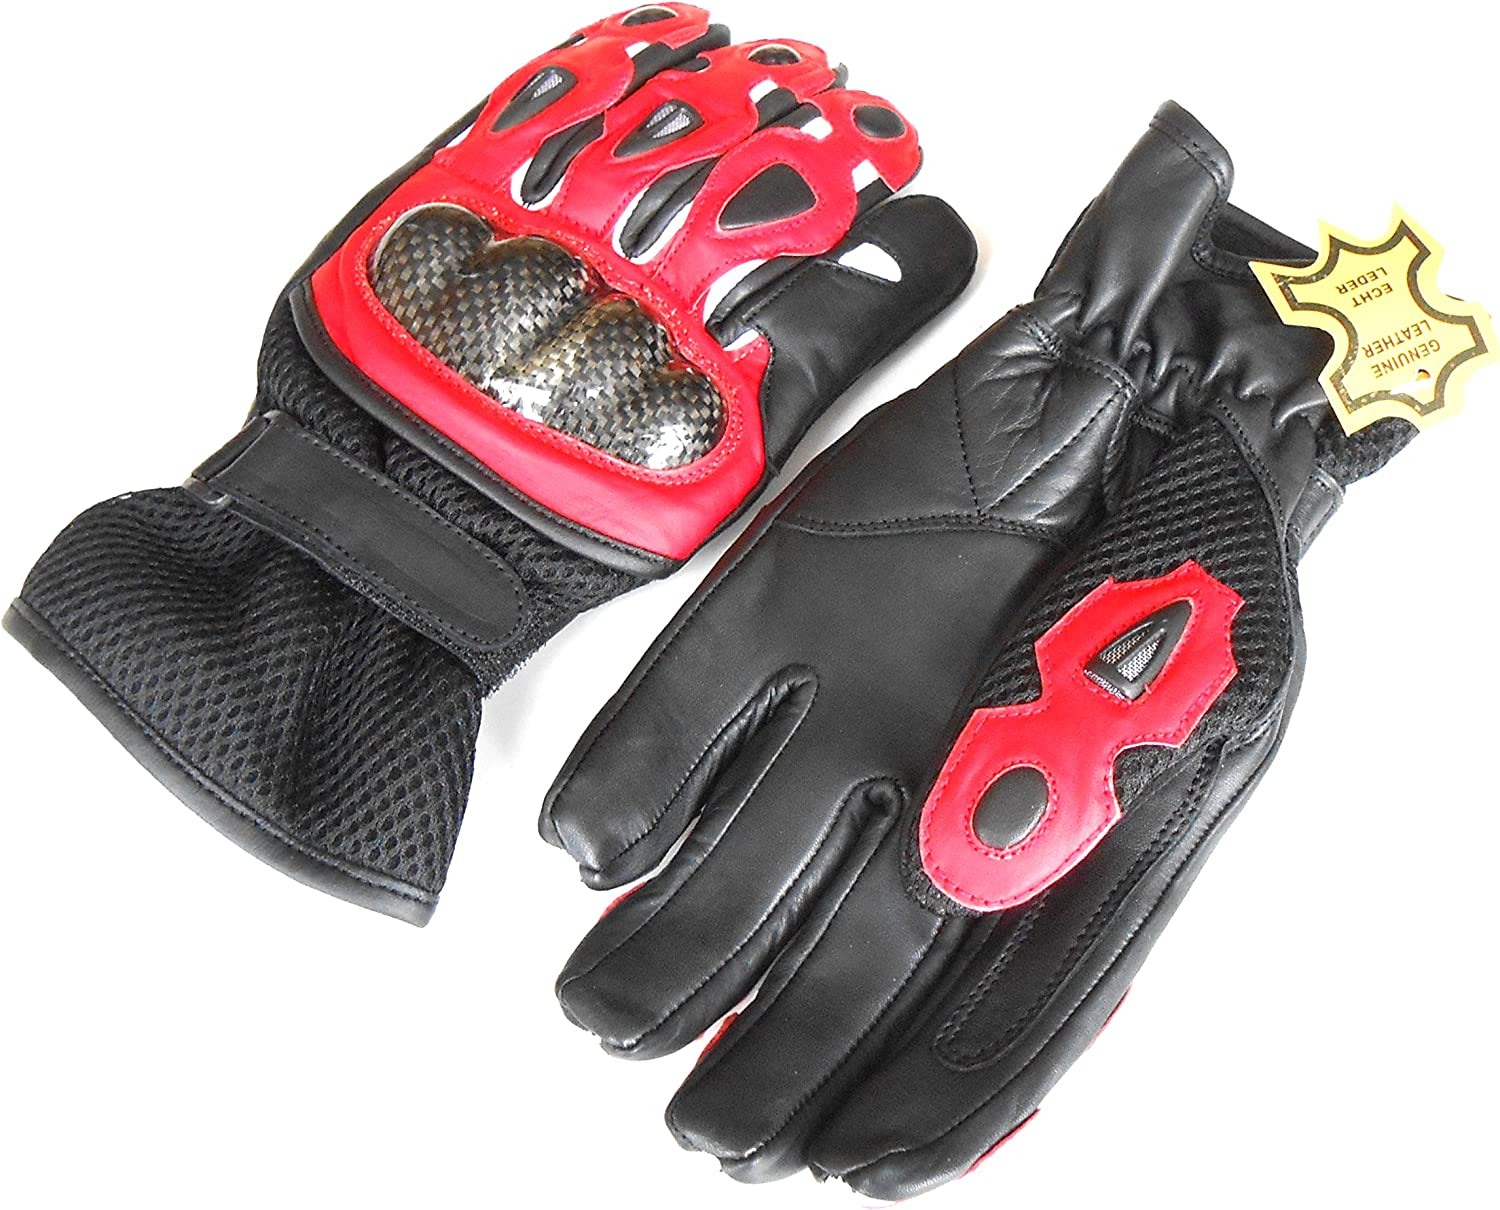 Ultimate Pro-biker Cow Analine Leather Sports Motorcycle Motorbike Full Finger Summer Mountain Bicycle Riding Sports Glove with Knuckle Protection for men/'s safety 9001